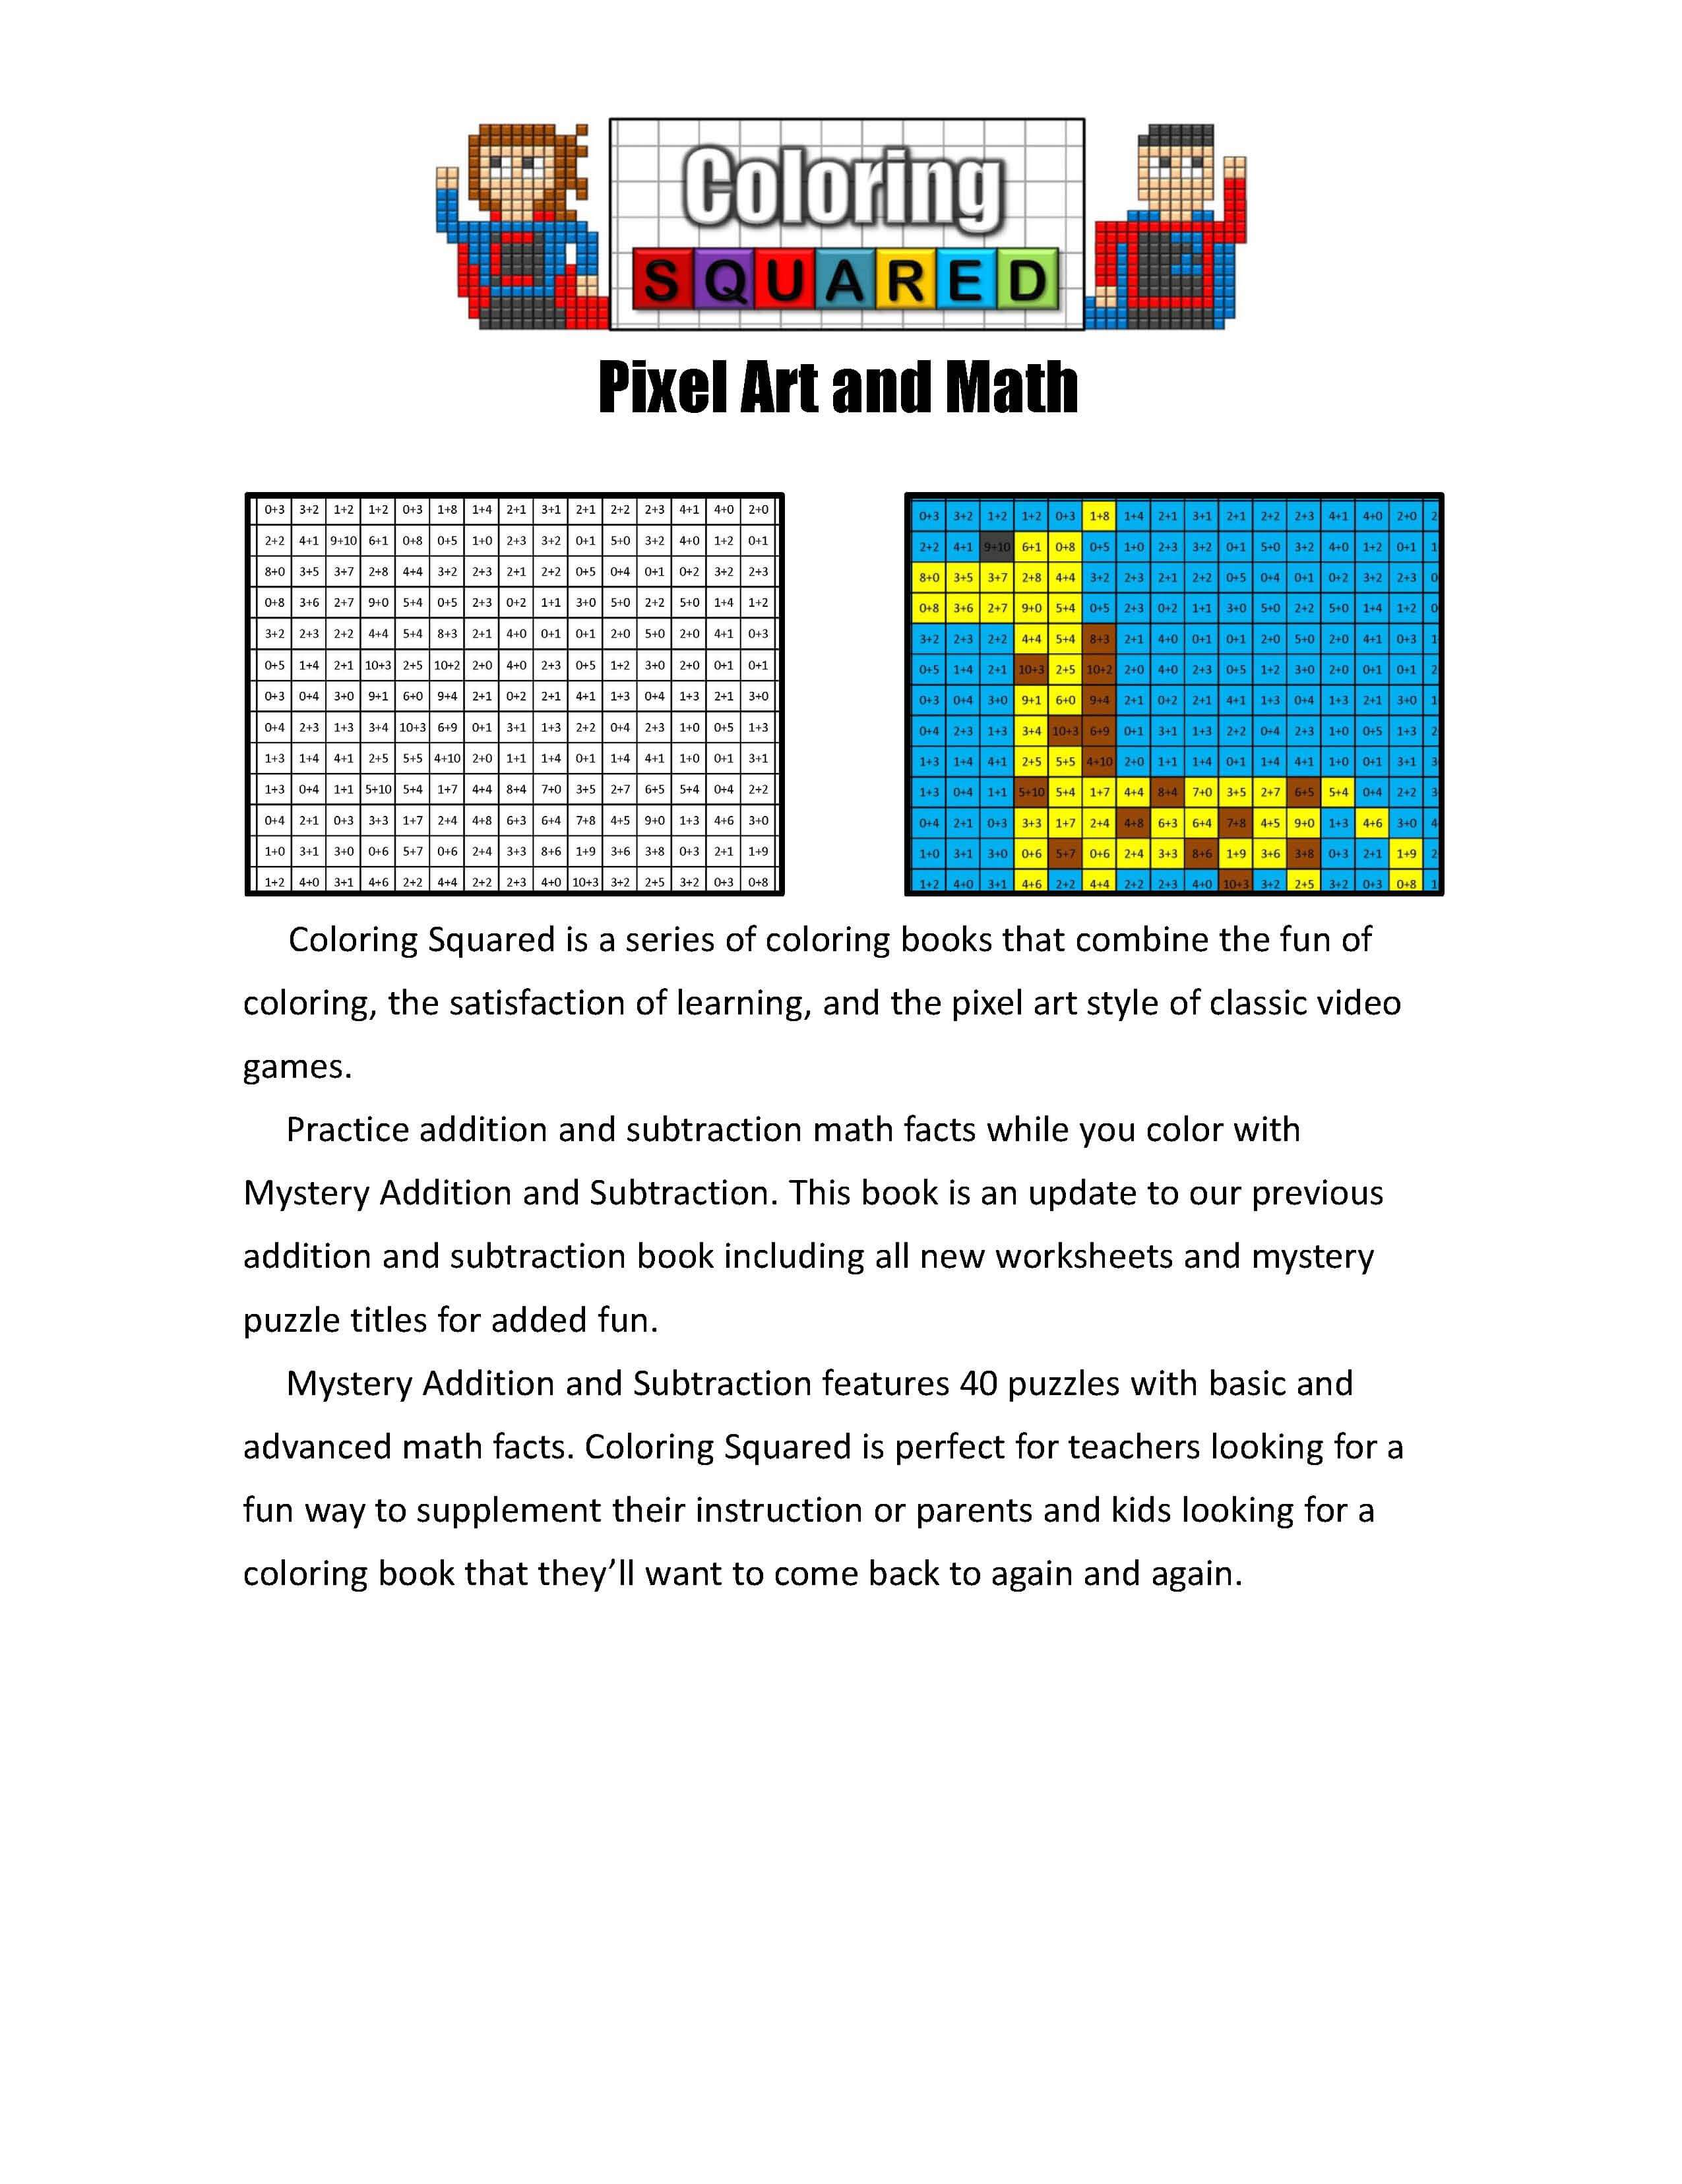 Mystery Addition And Subtraction